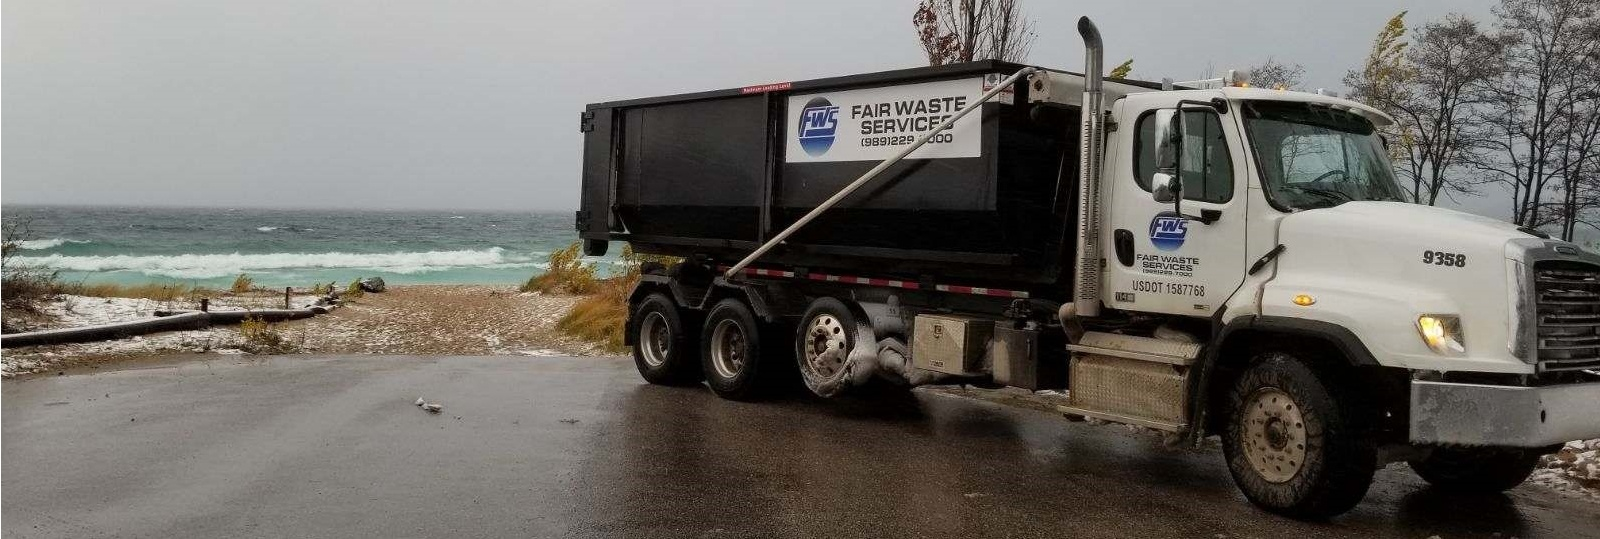 Fair Waste Services